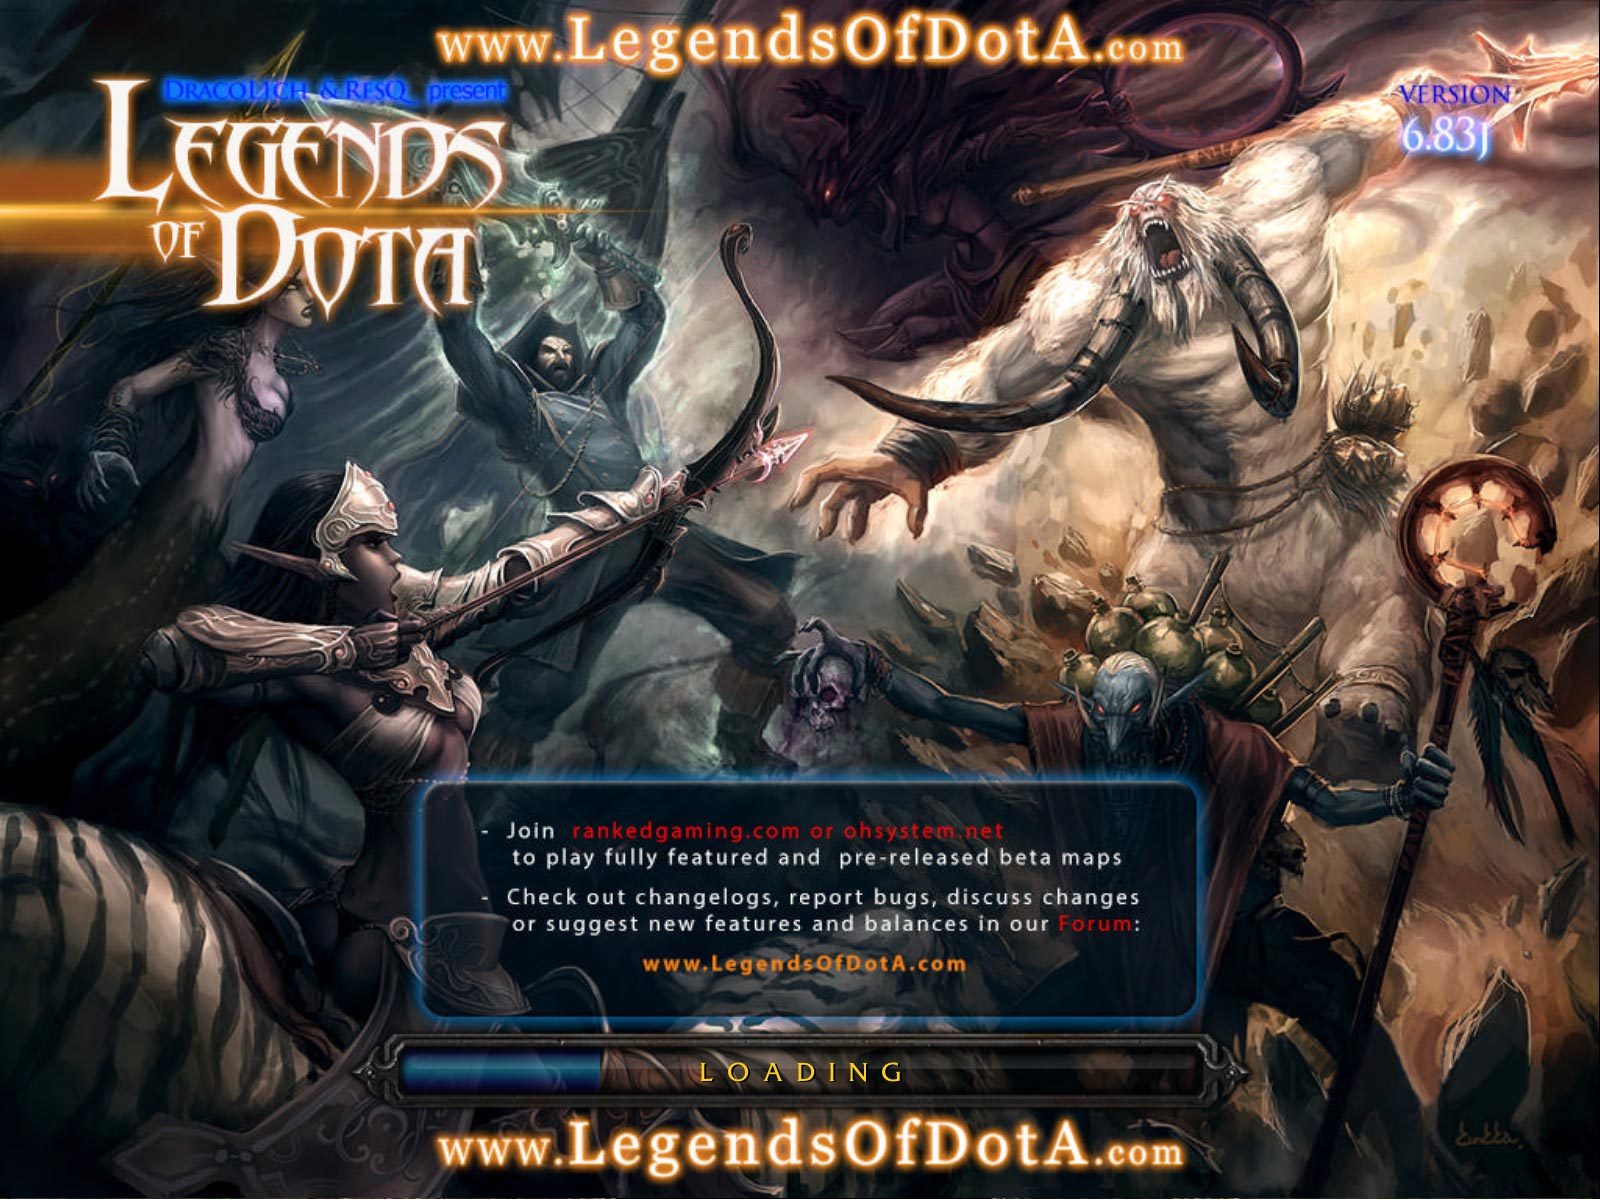 Legends of Dota Screenshot